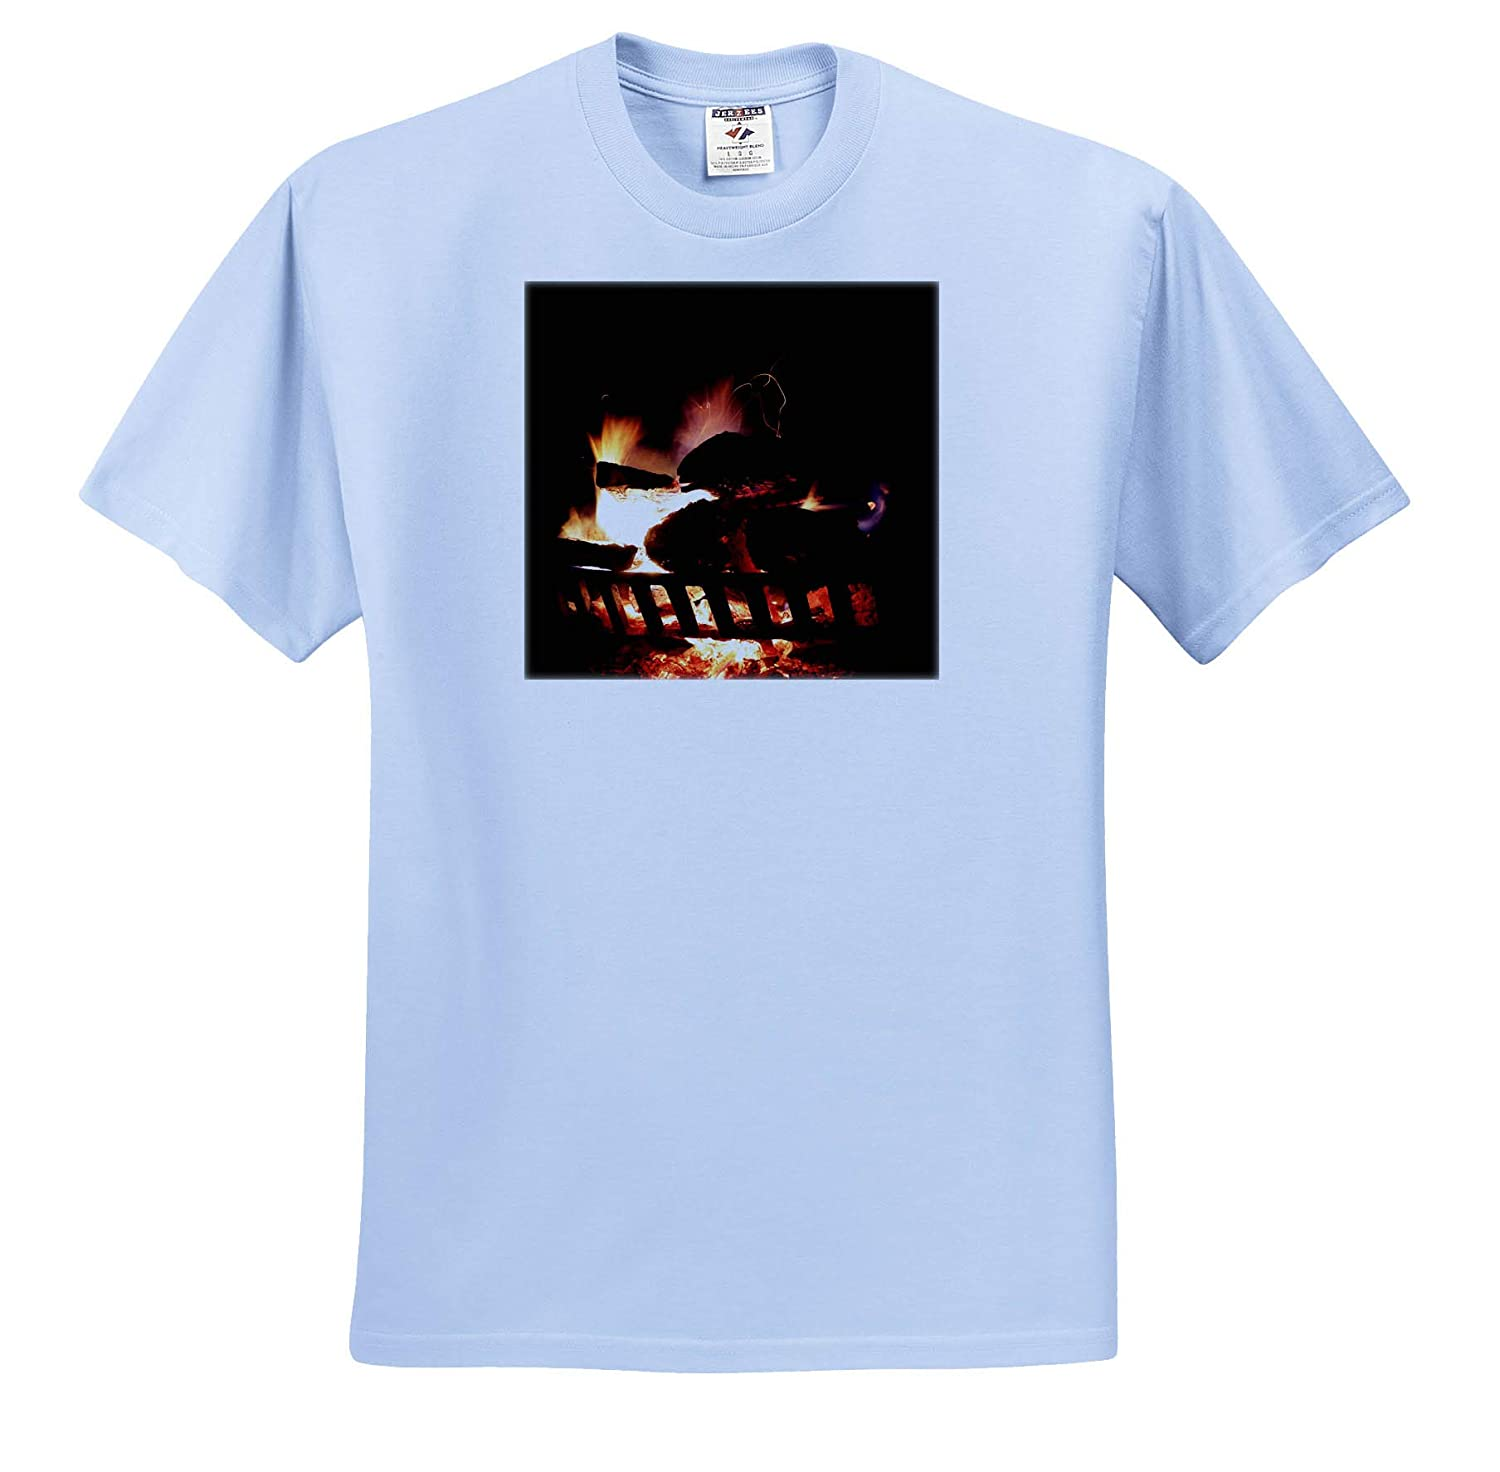 3dRose Stamp City Nature Photgraph of a Very hot fire in an Outdoor Fireplace - T-Shirts